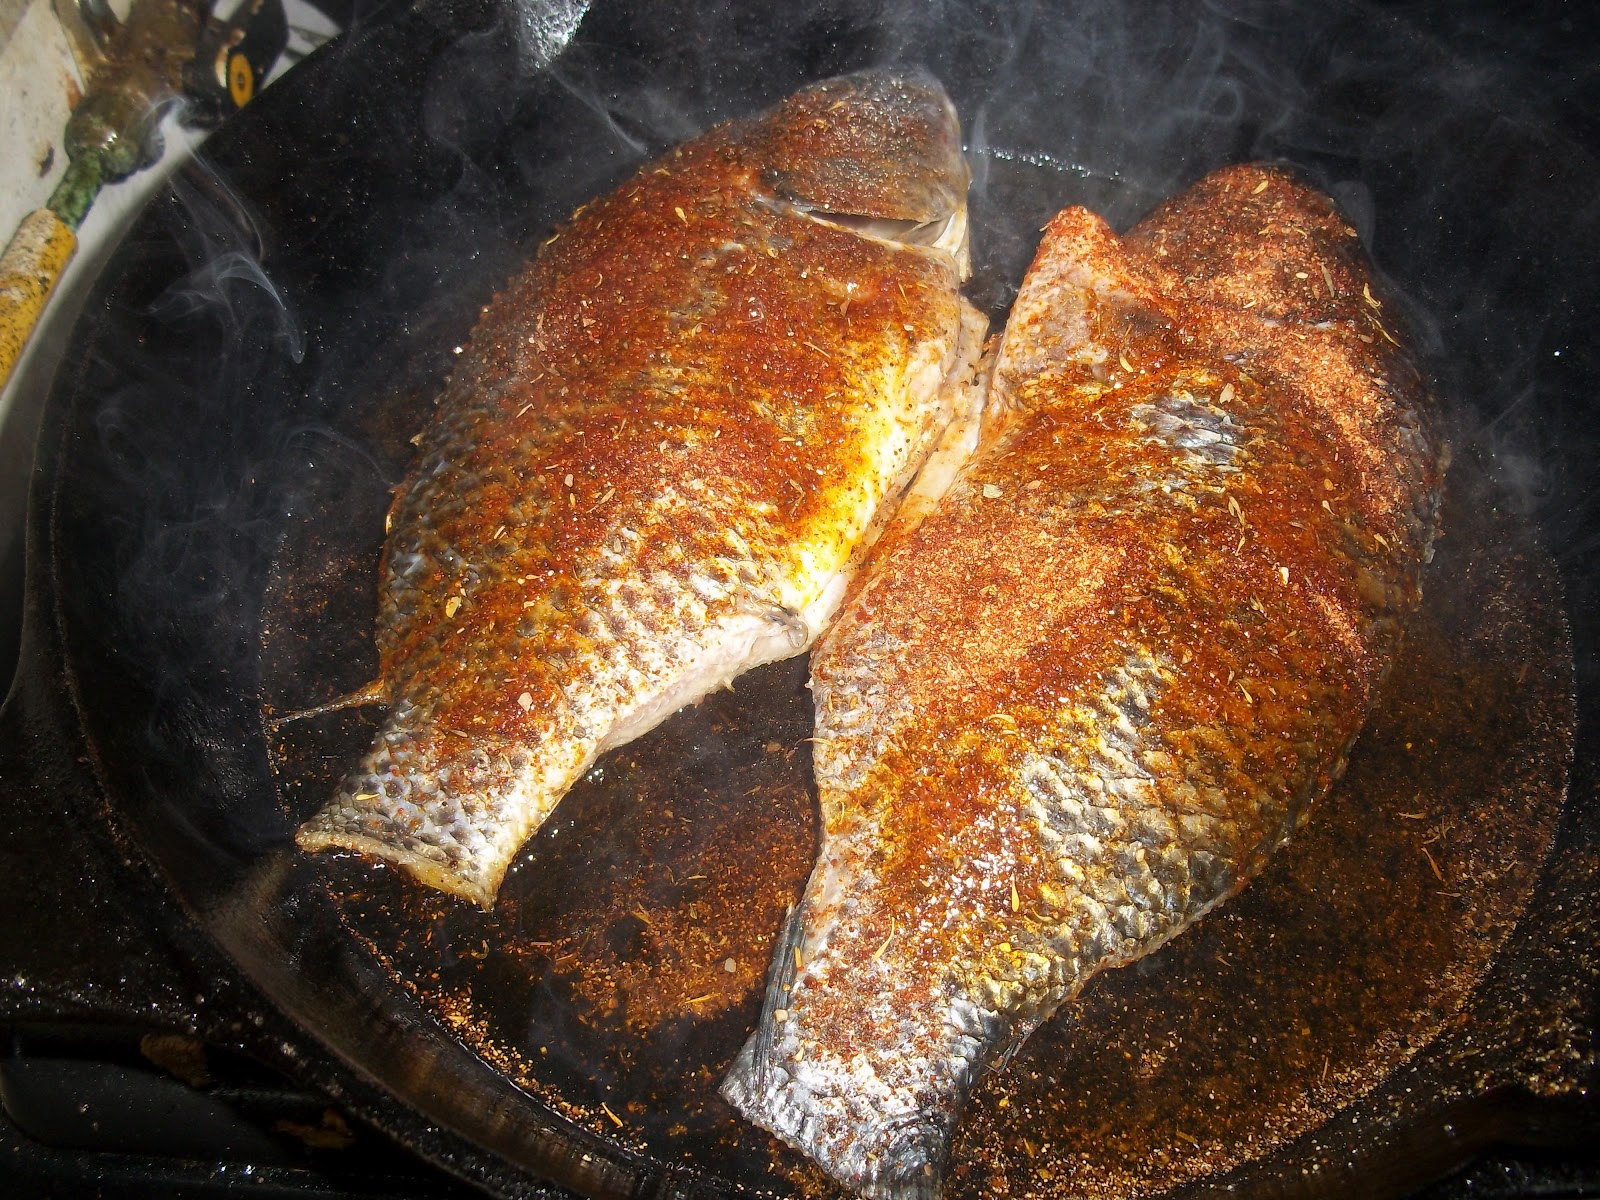 Blackened fish recipe 2 ways penniless parenting for How do you cook fish